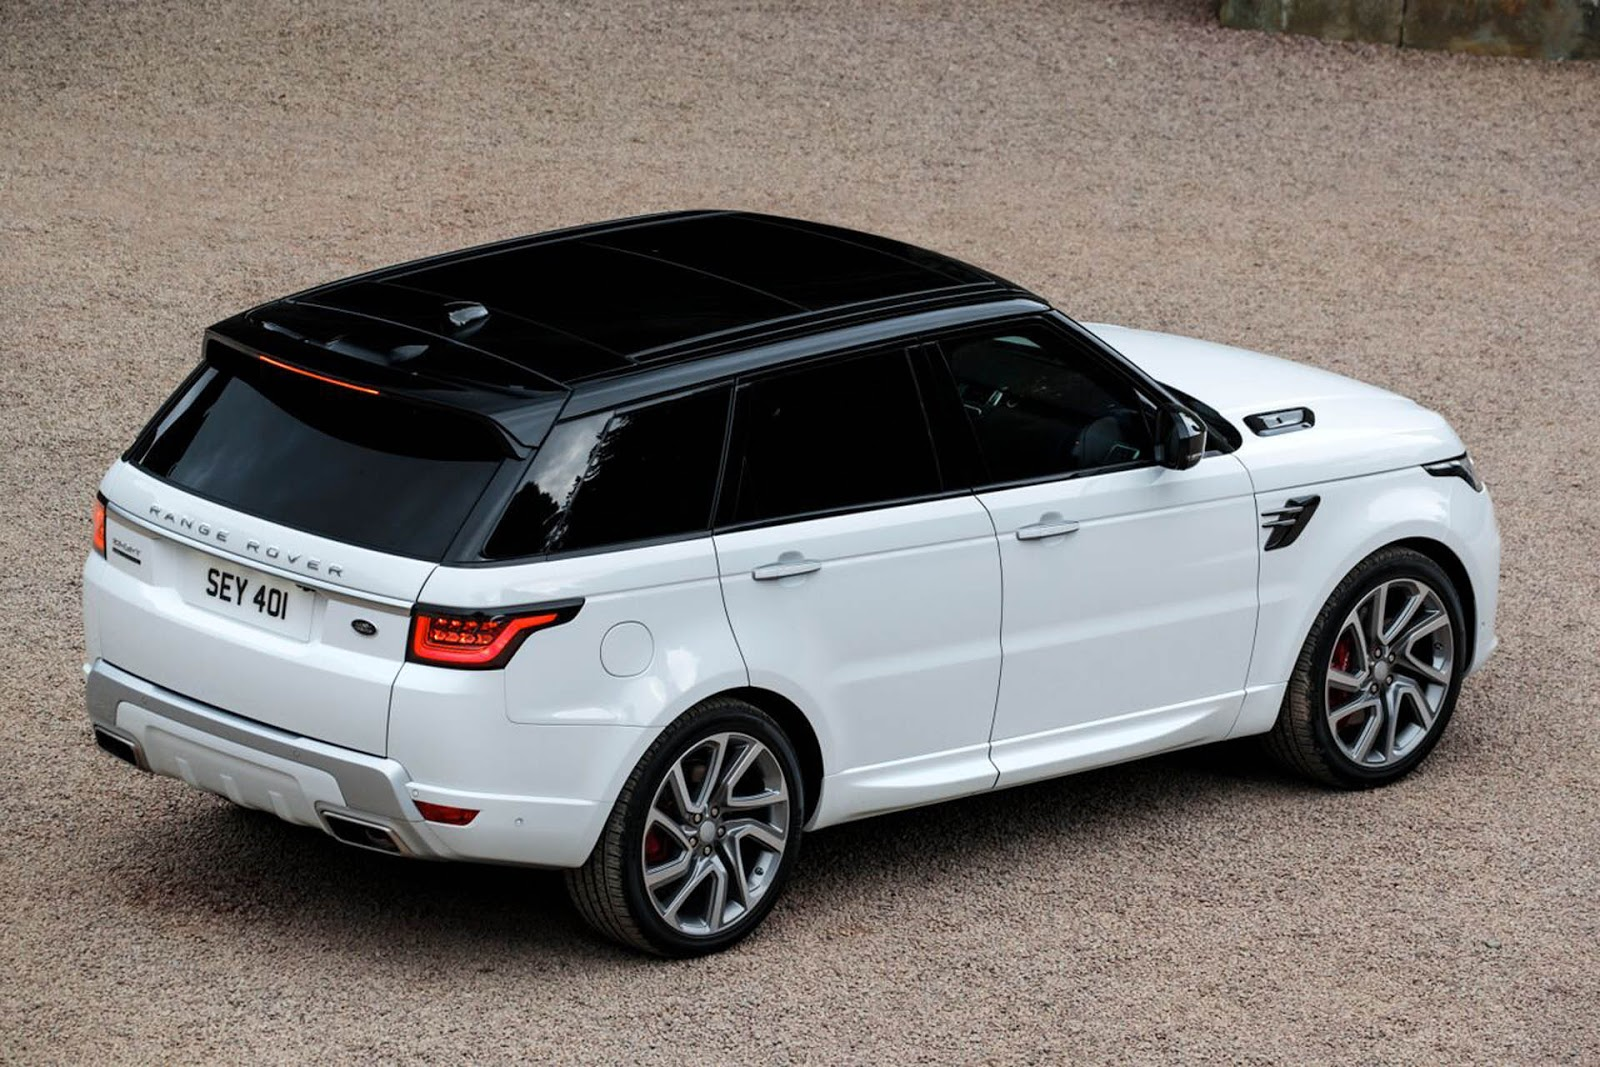 2019 Range Rover Sport Get Some New Modifications